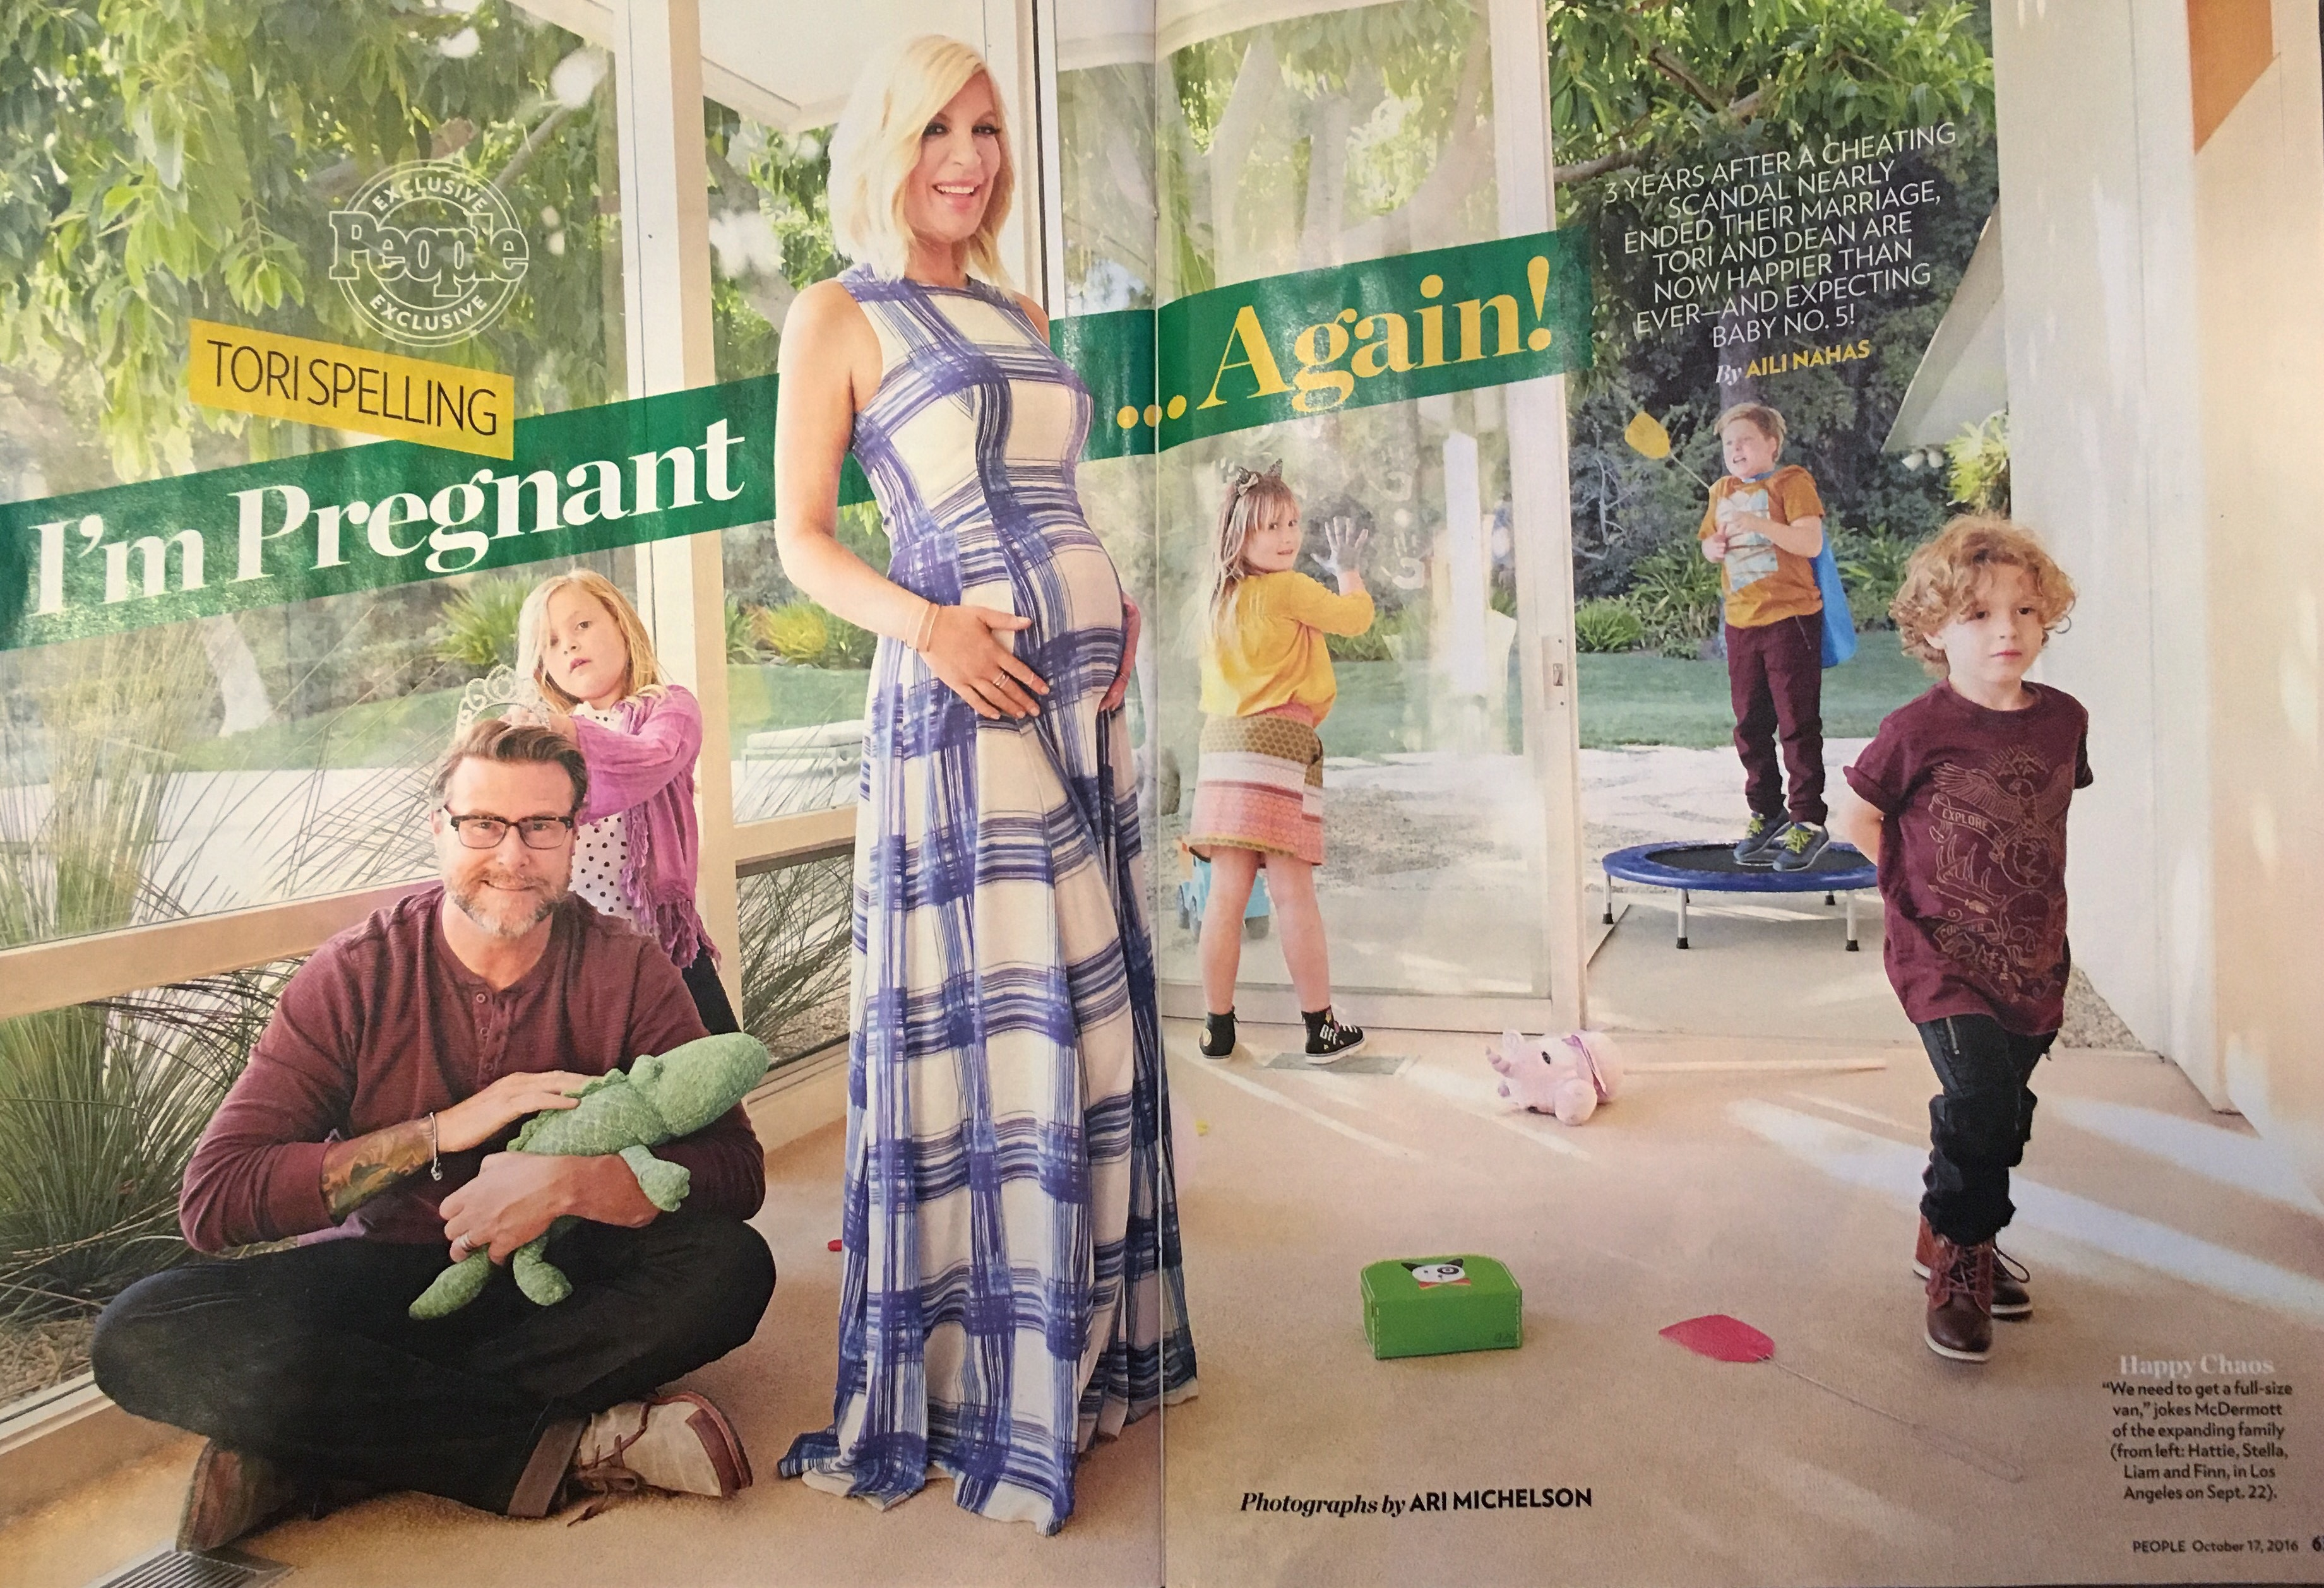 Tori Spelling in People Magazine